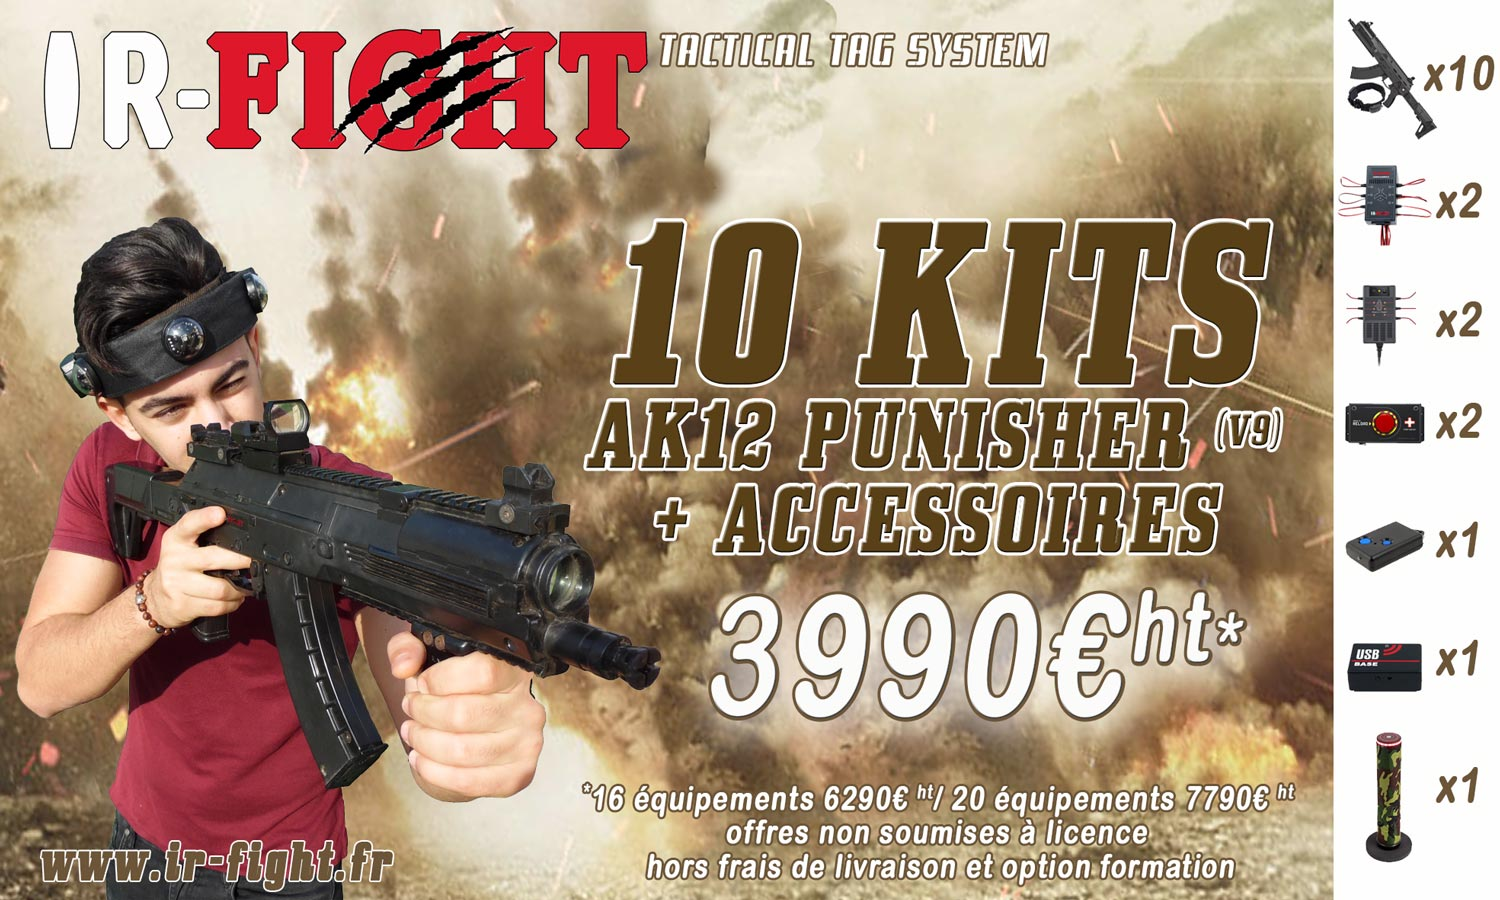 OFFRE-STARTER-AK12-PUNISHER-V9-AVRIL-2020-IR-FIGHT